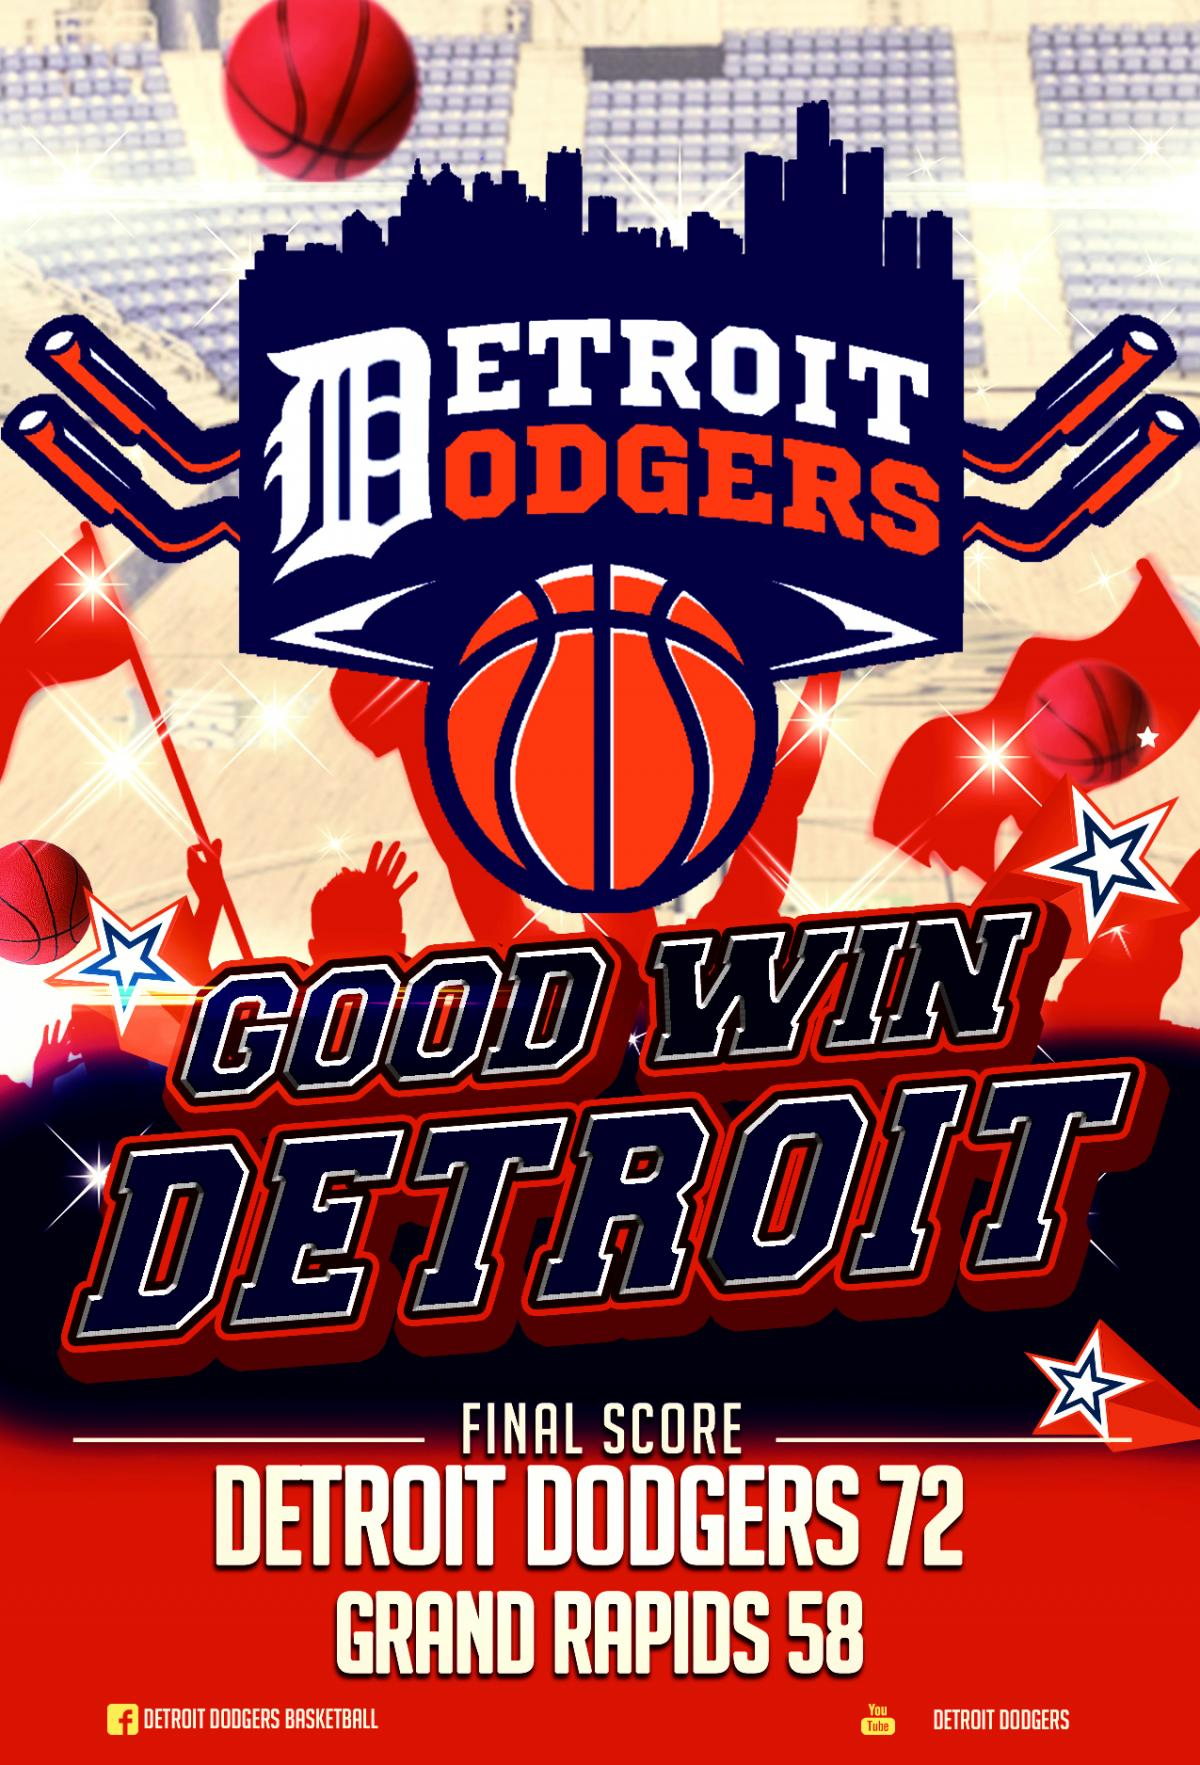 GOOD WIN DETROIT